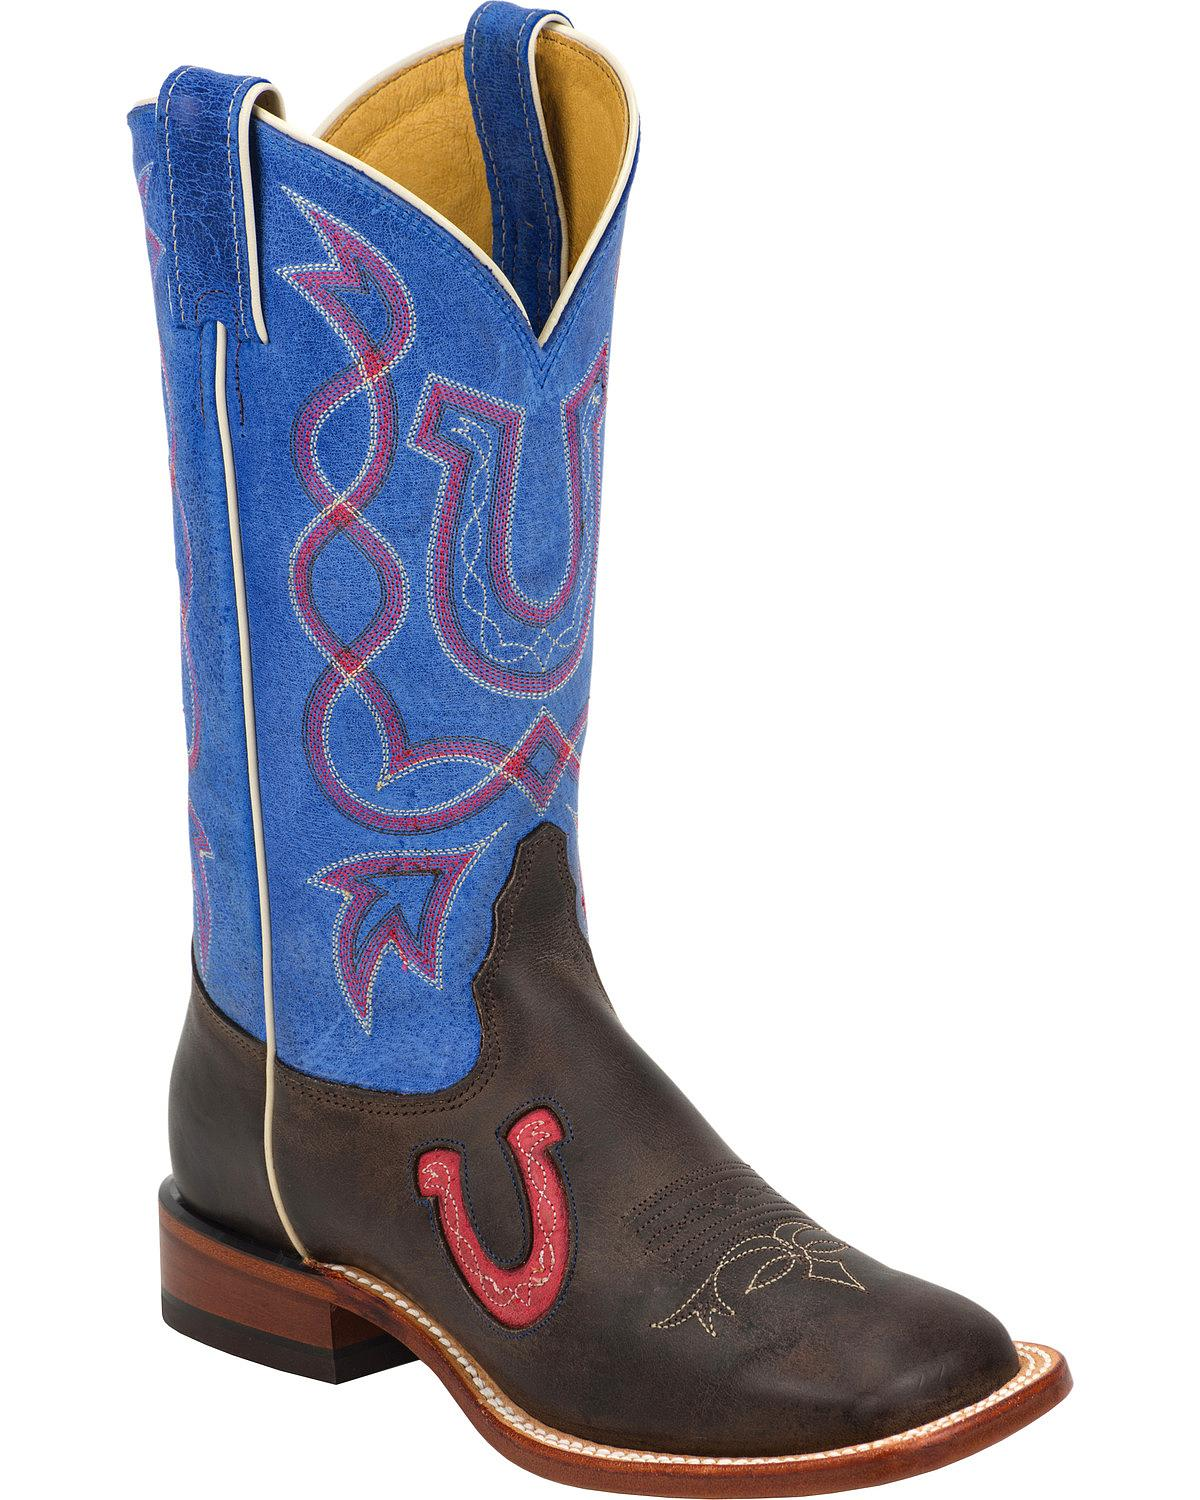 Tony Lama Women's Blue And Chocolate Americana Cowgirl Boot Square Toe Tc1009l by Tony Lama